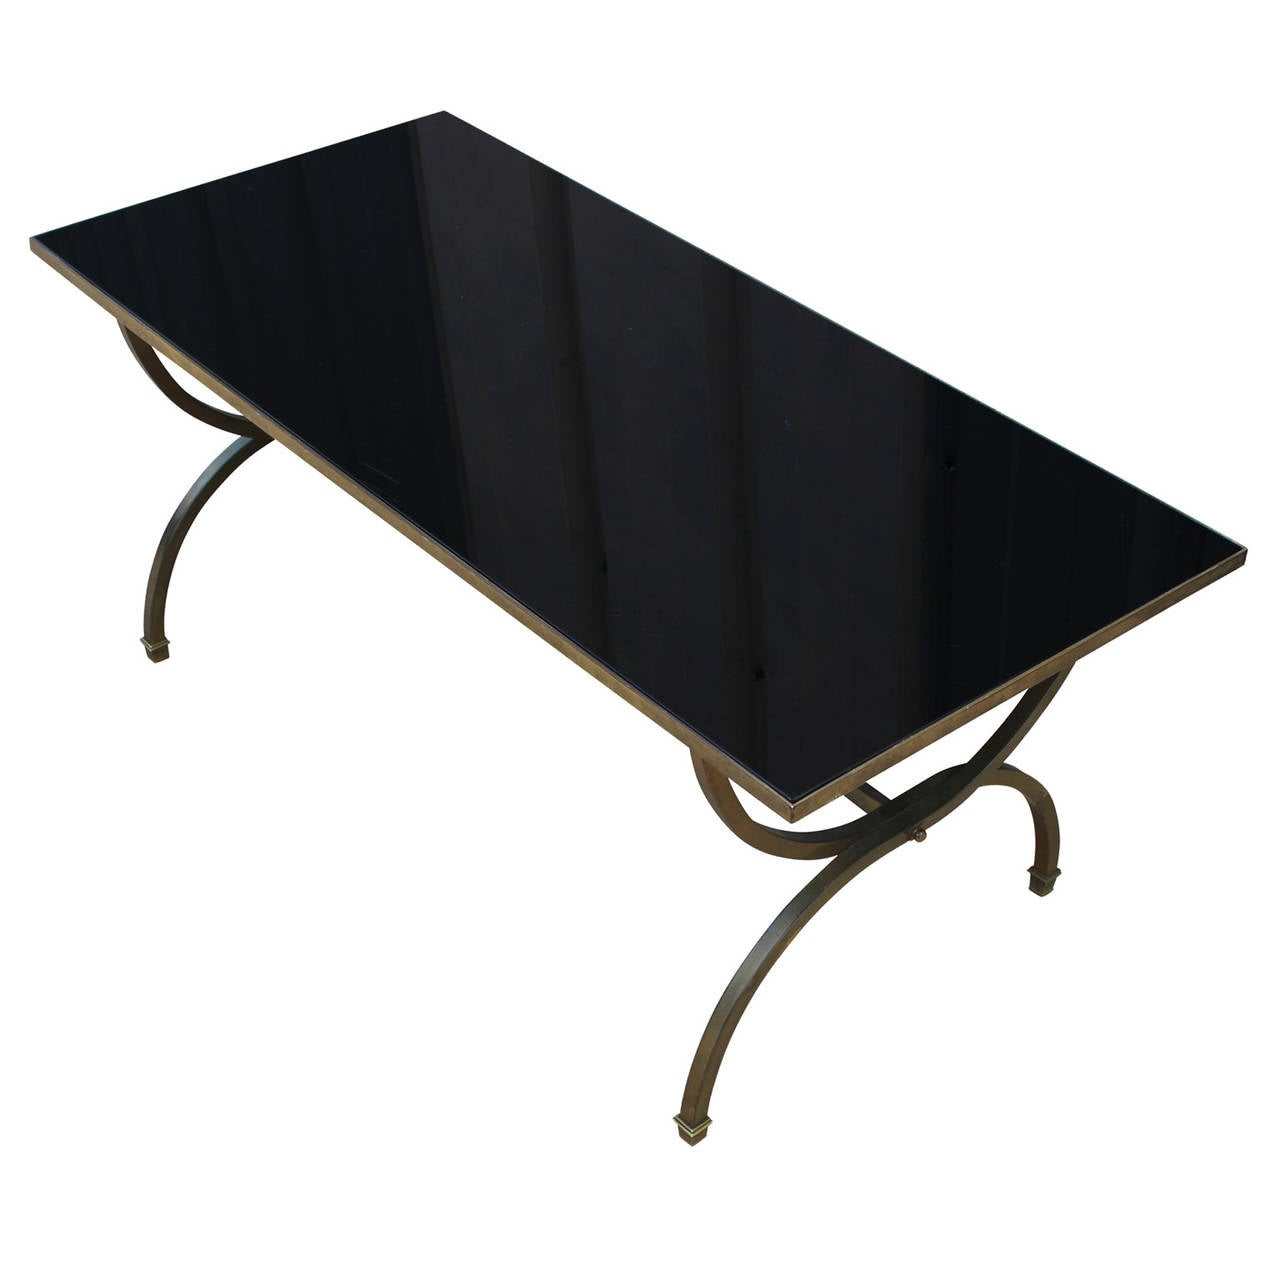 Hollywood Regency Style Black Glass And Brass Coffee Table For Sale At 1stdibs